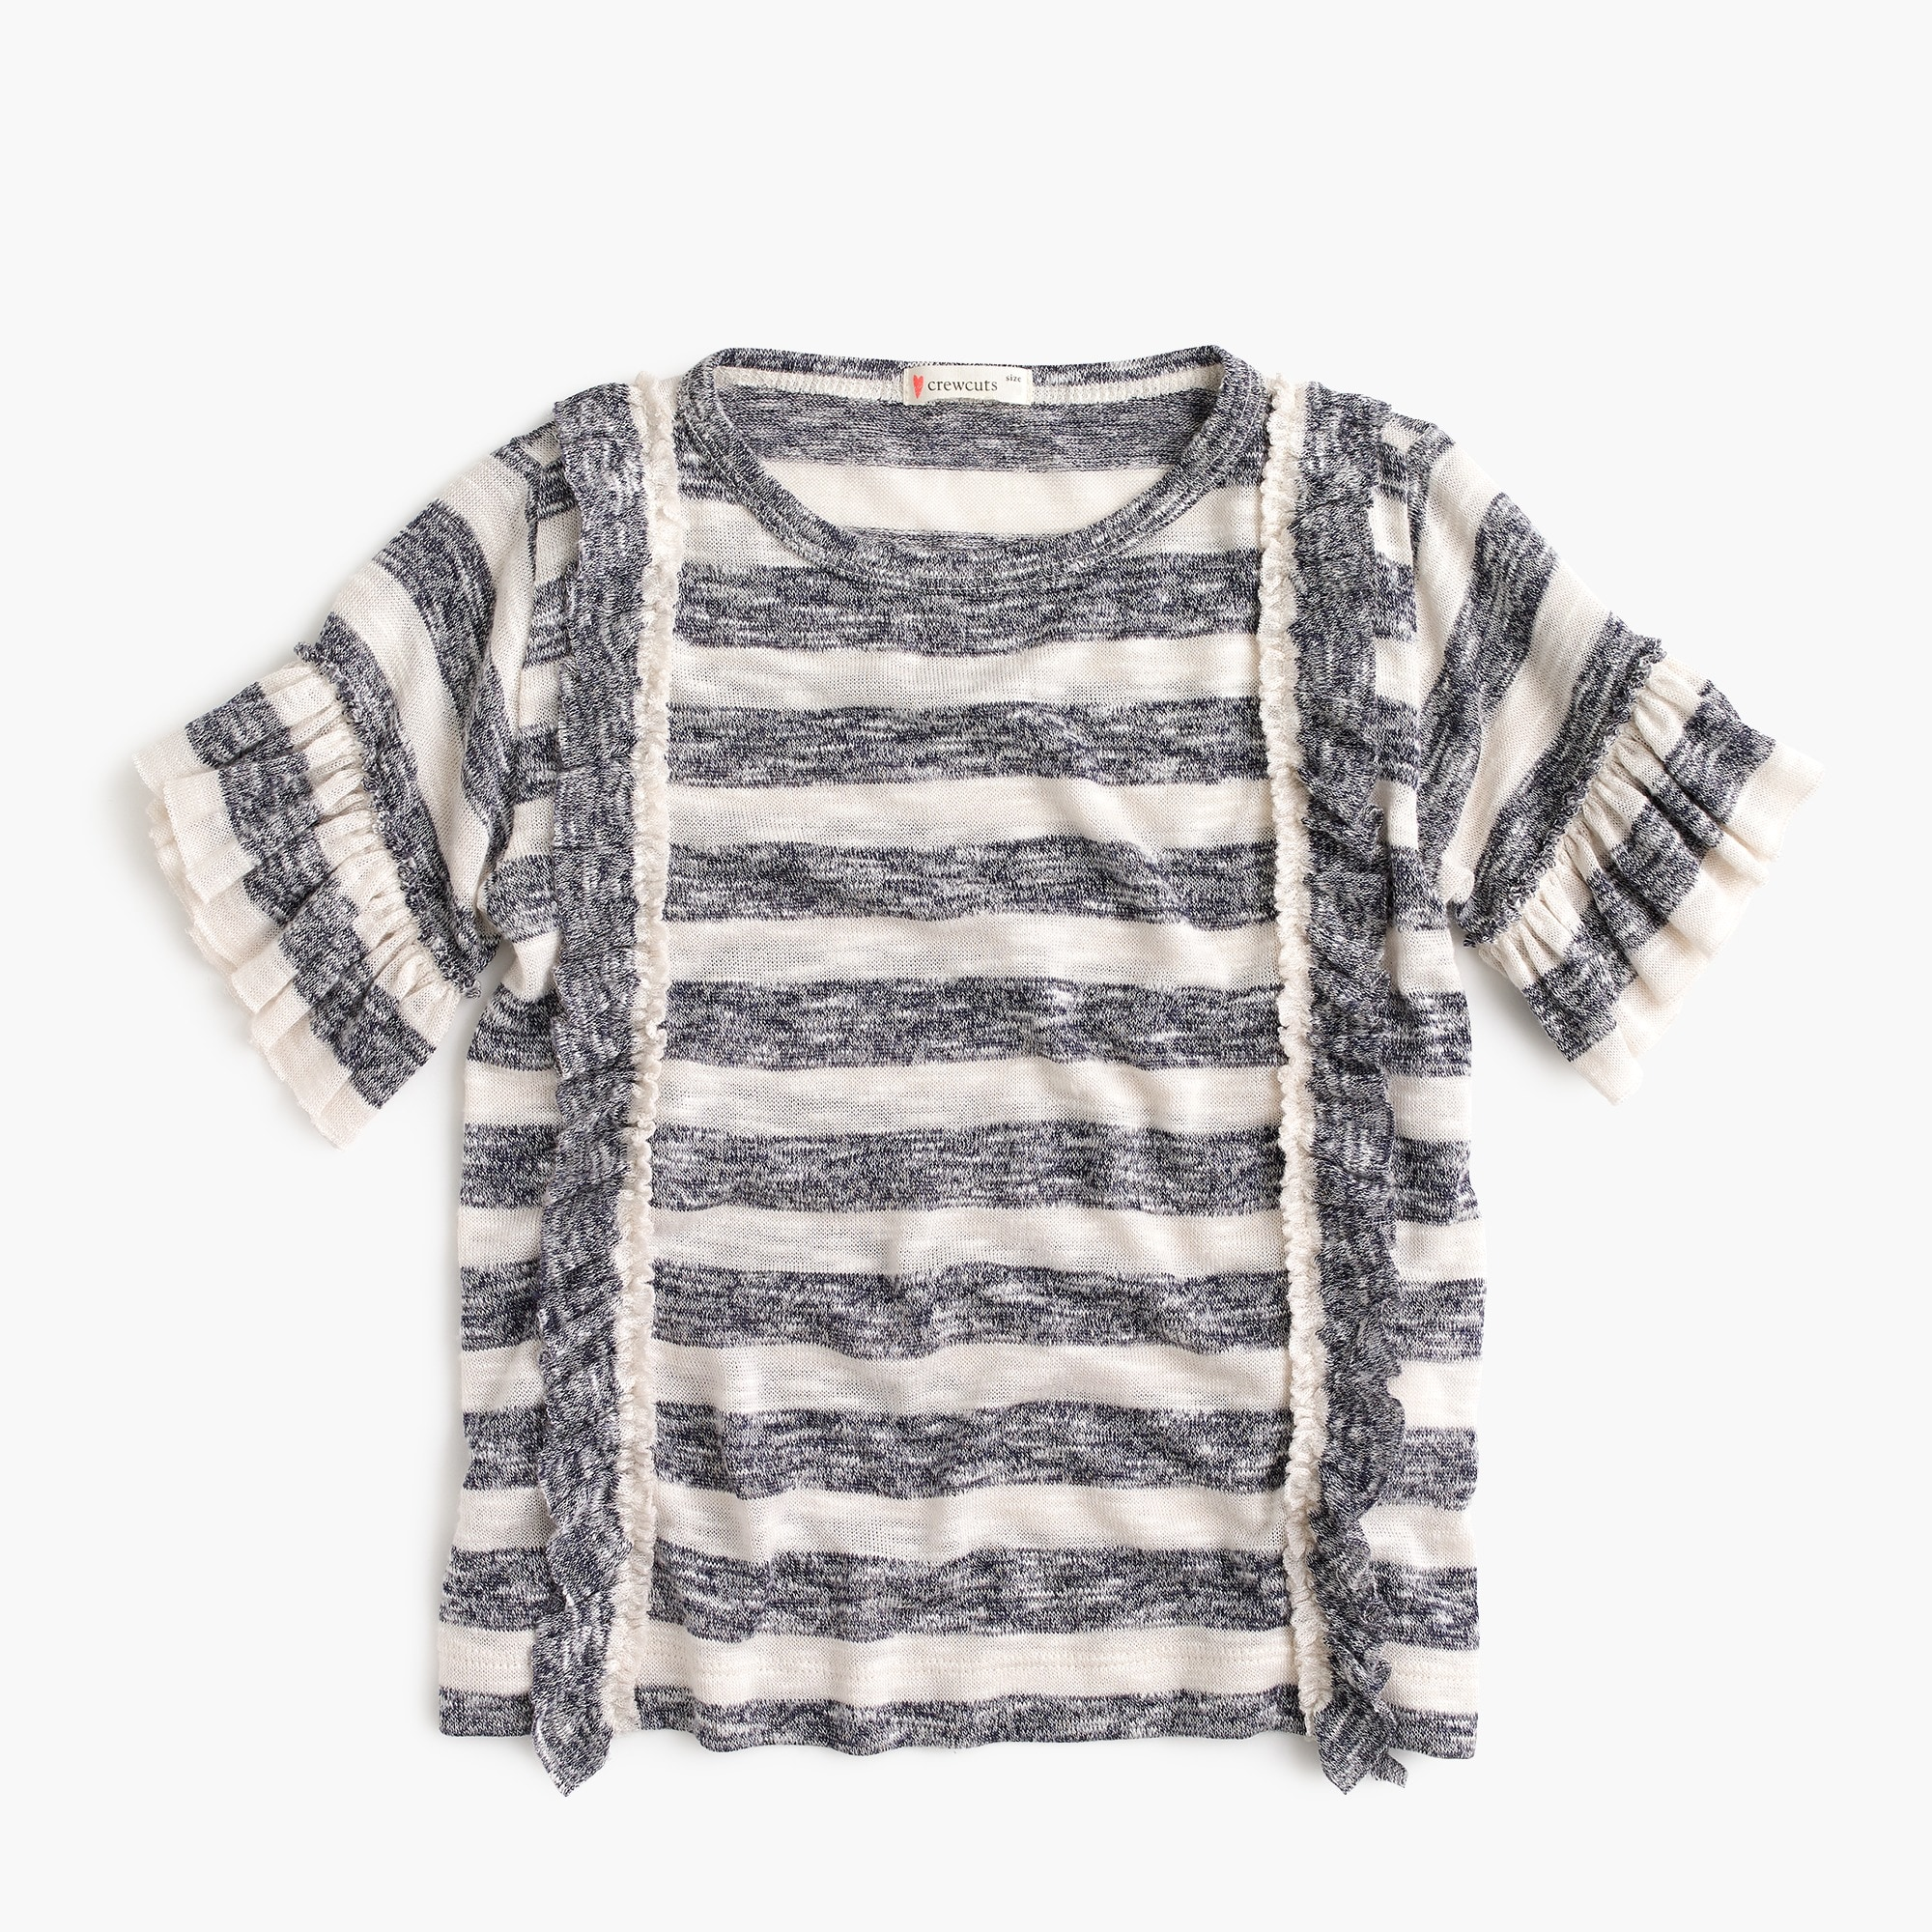 Image 1 for Girls' striped T-shirt with ruffles